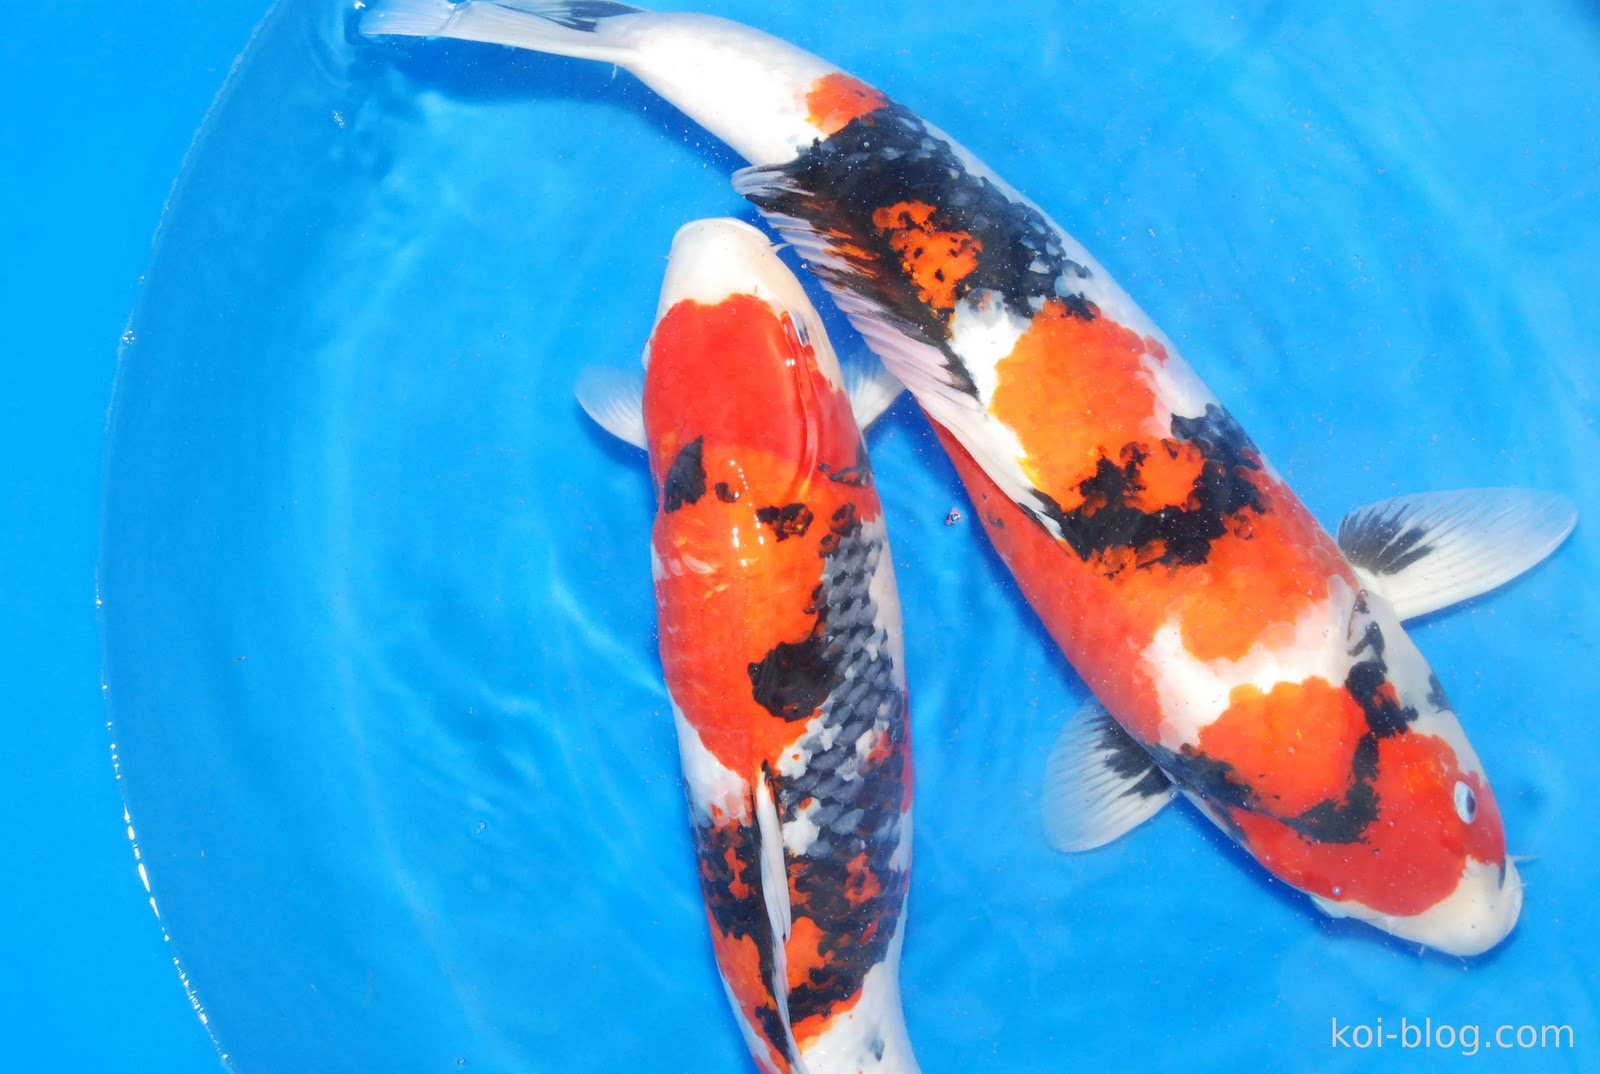 Koi blog koi for Koi goldfisch